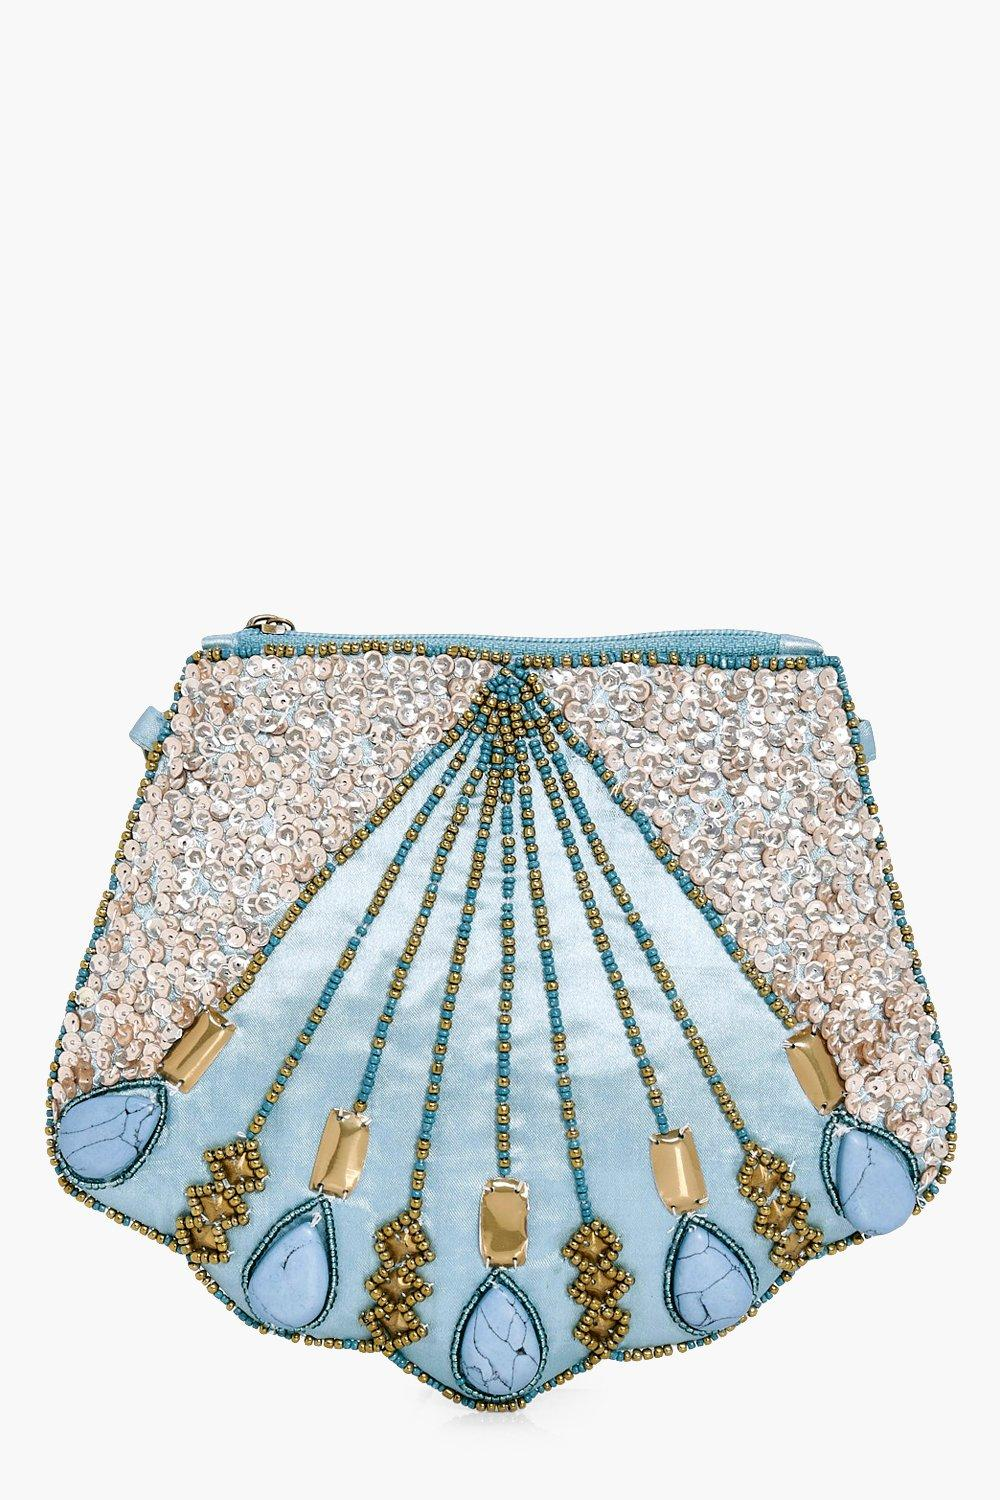 Boutique Shell Beaded Clutch - green - Hope Boutiq